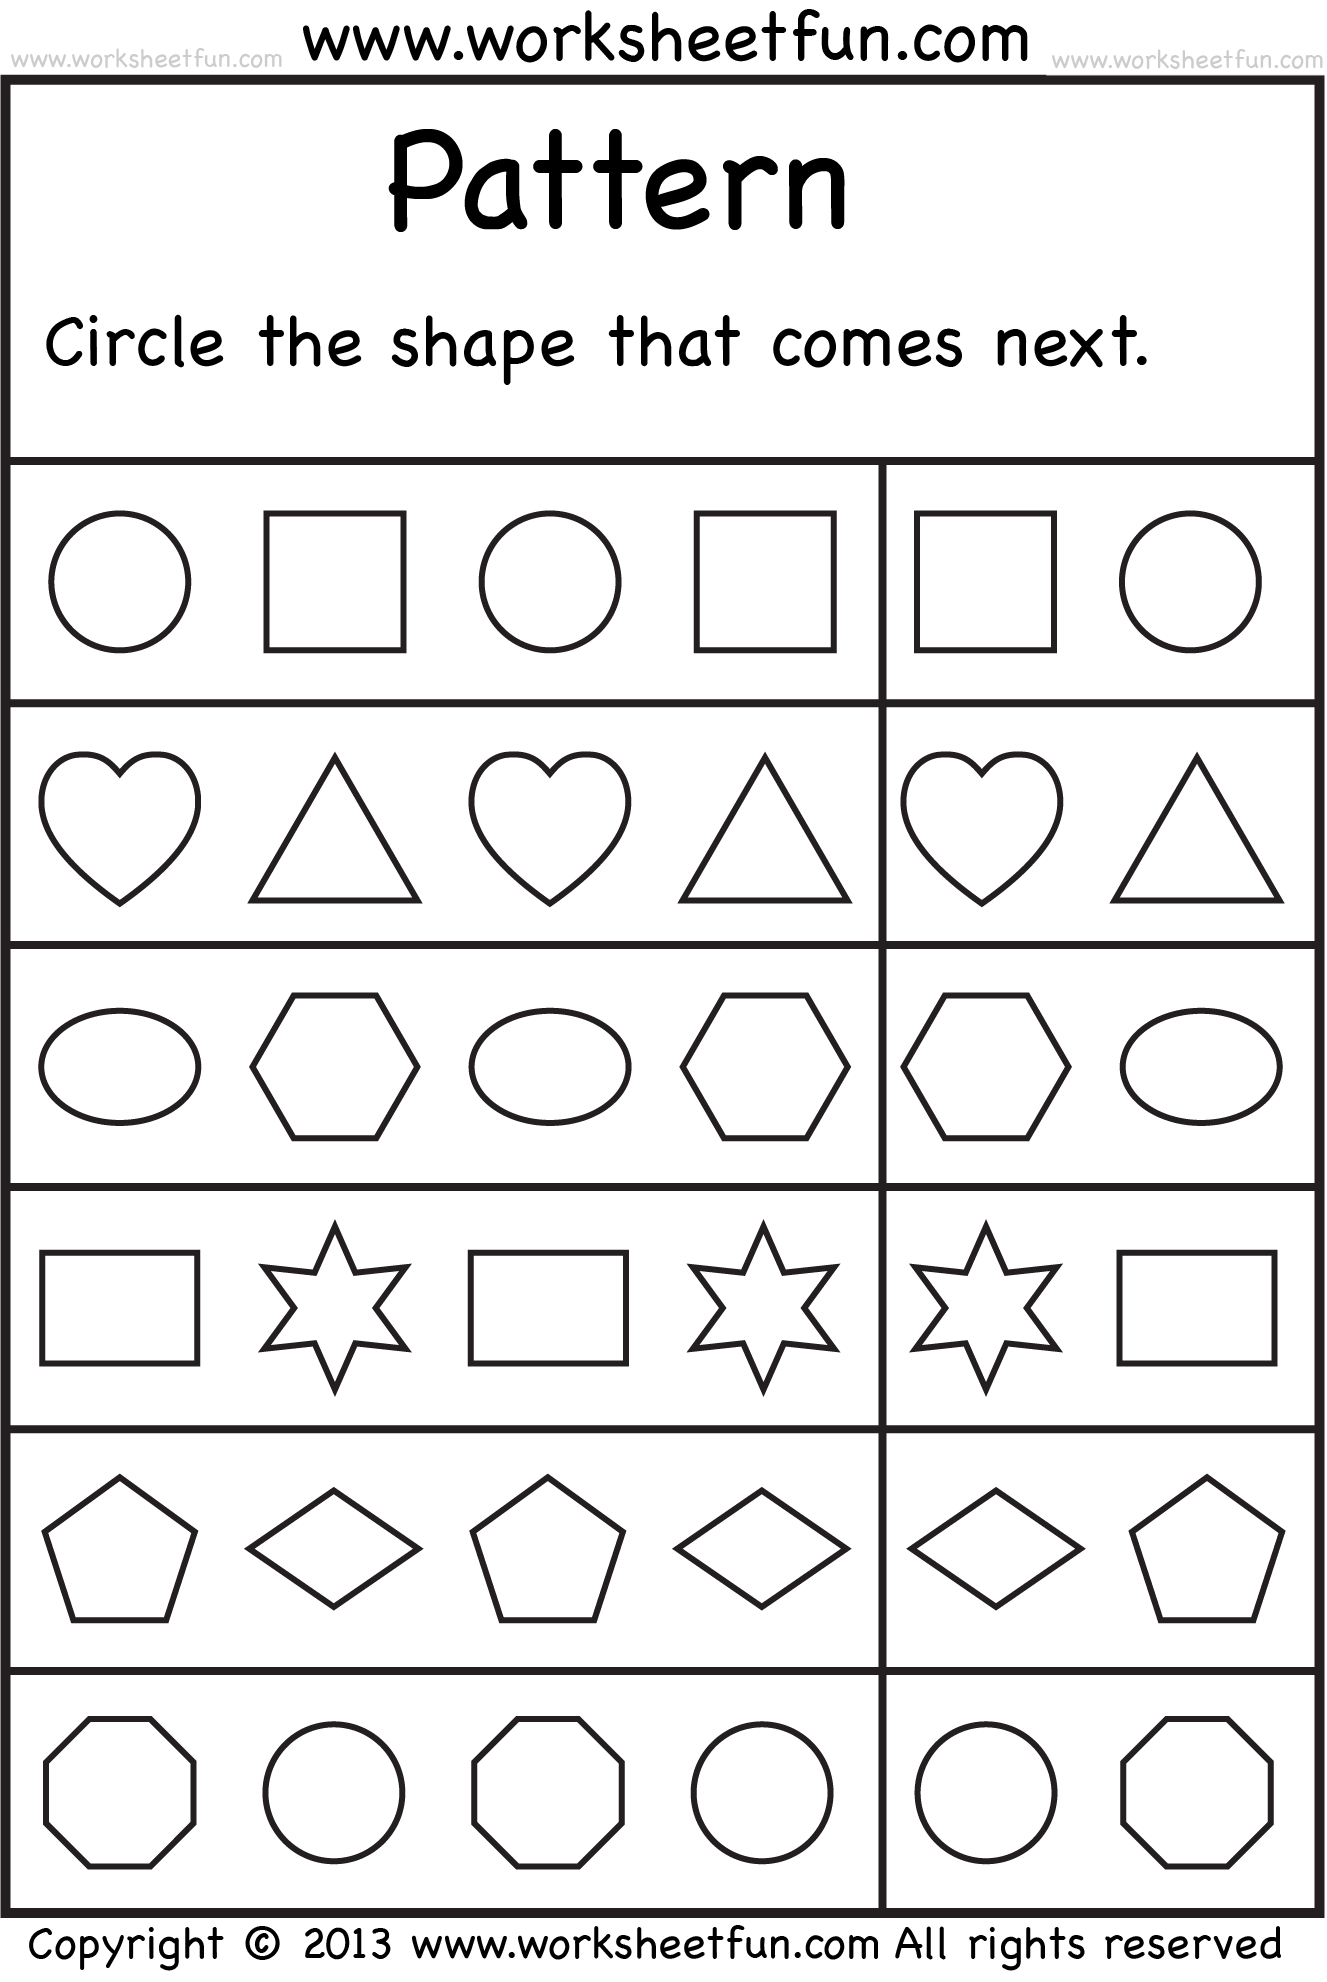 Proatmealus  Surprising  Images About School Worksheets On Pinterest  Number Words  With Great  Images About School Worksheets On Pinterest  Number Words Alphabet Worksheets And Free Printable Kindergarten Worksheets With Awesome Super Teacher Worksheets River Riding Also Dads Worksheets Multiplication In Addition Spelling Worksheets Pdf And Reference Worksheet As Well As Factoring Trinomials Worksheets Algebra  Additionally Super Teacher Worksheets Kindergarten From Pinterestcom With Proatmealus  Great  Images About School Worksheets On Pinterest  Number Words  With Awesome  Images About School Worksheets On Pinterest  Number Words Alphabet Worksheets And Free Printable Kindergarten Worksheets And Surprising Super Teacher Worksheets River Riding Also Dads Worksheets Multiplication In Addition Spelling Worksheets Pdf From Pinterestcom